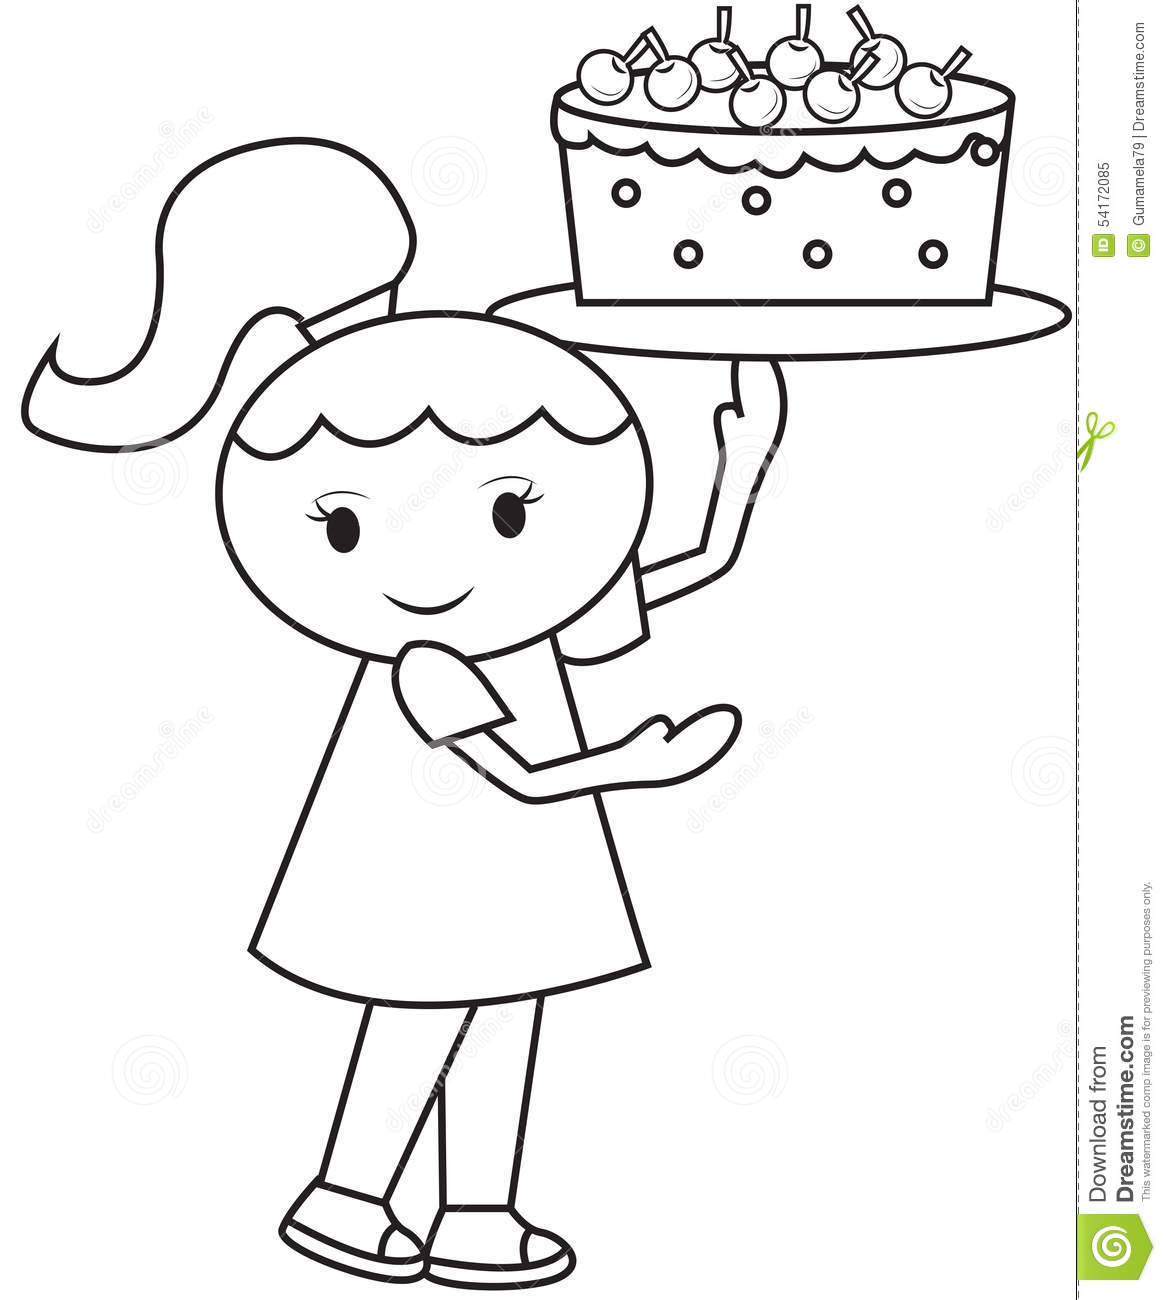 cake coloring pages for girls - photo #22